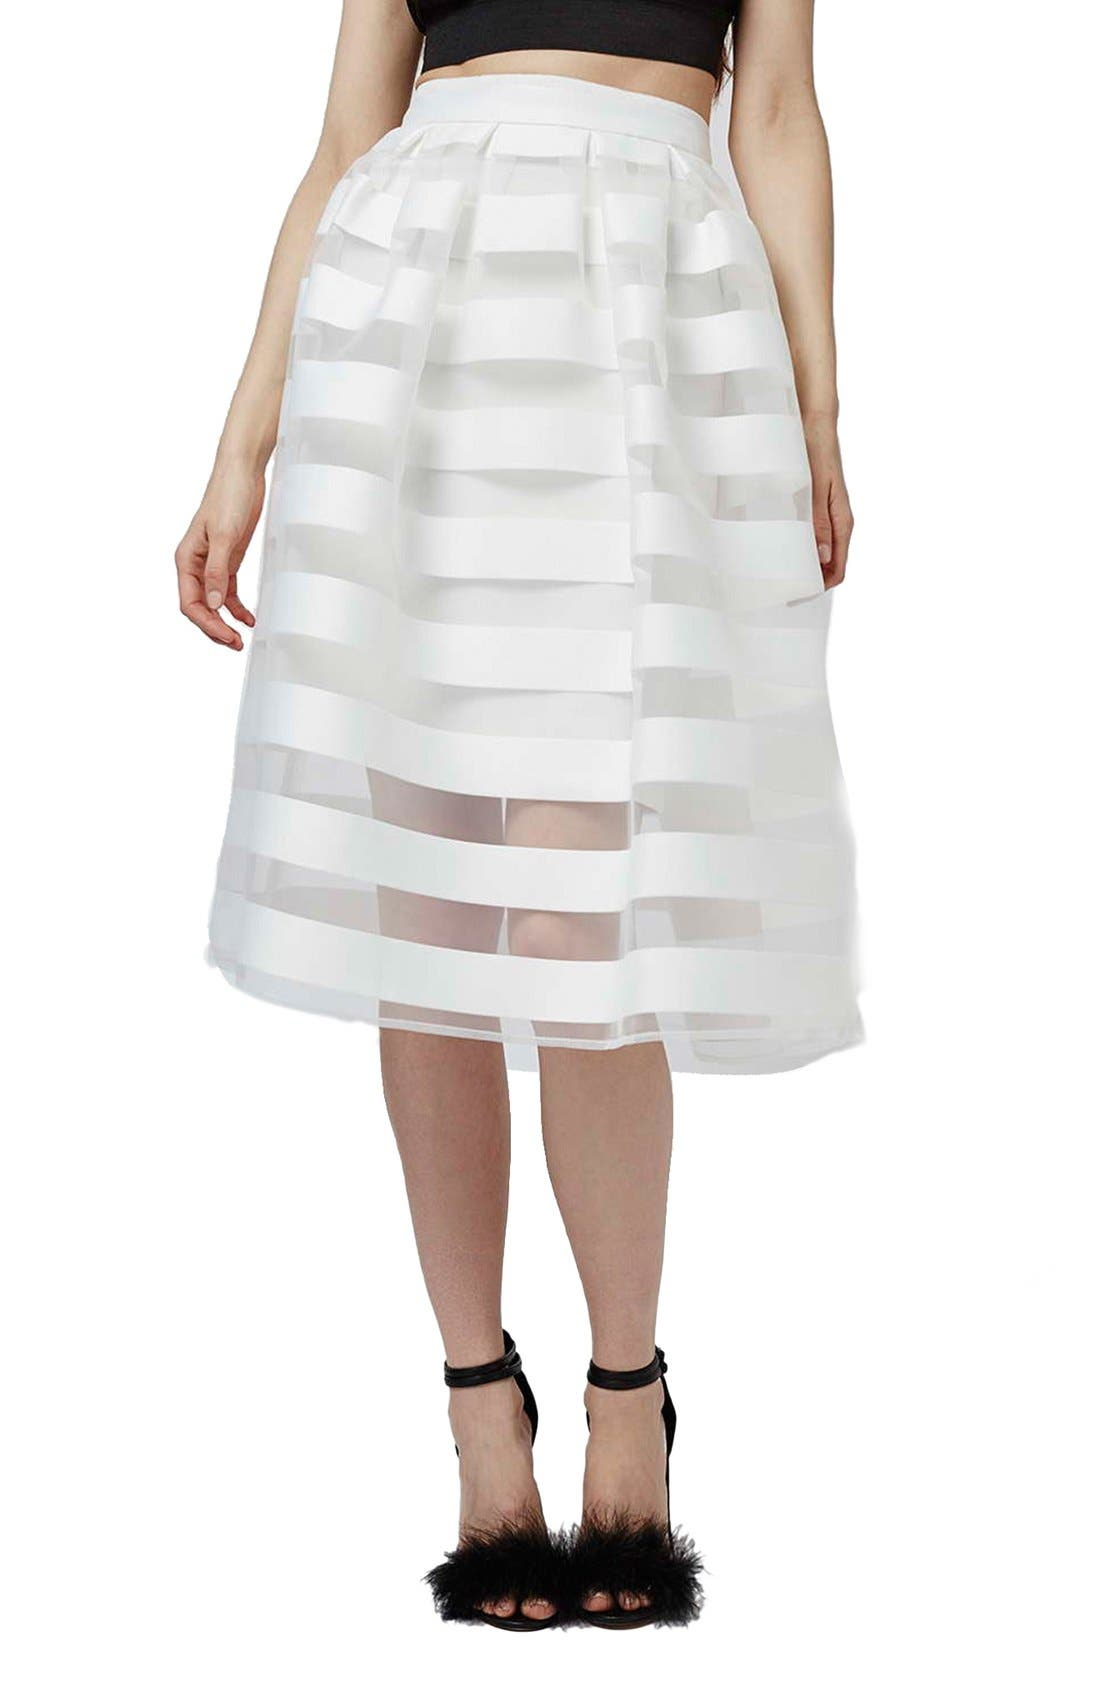 Alternate Image 1 Selected - Topshop 'Glass' Sheer Stripe Pleat Midi Skirt